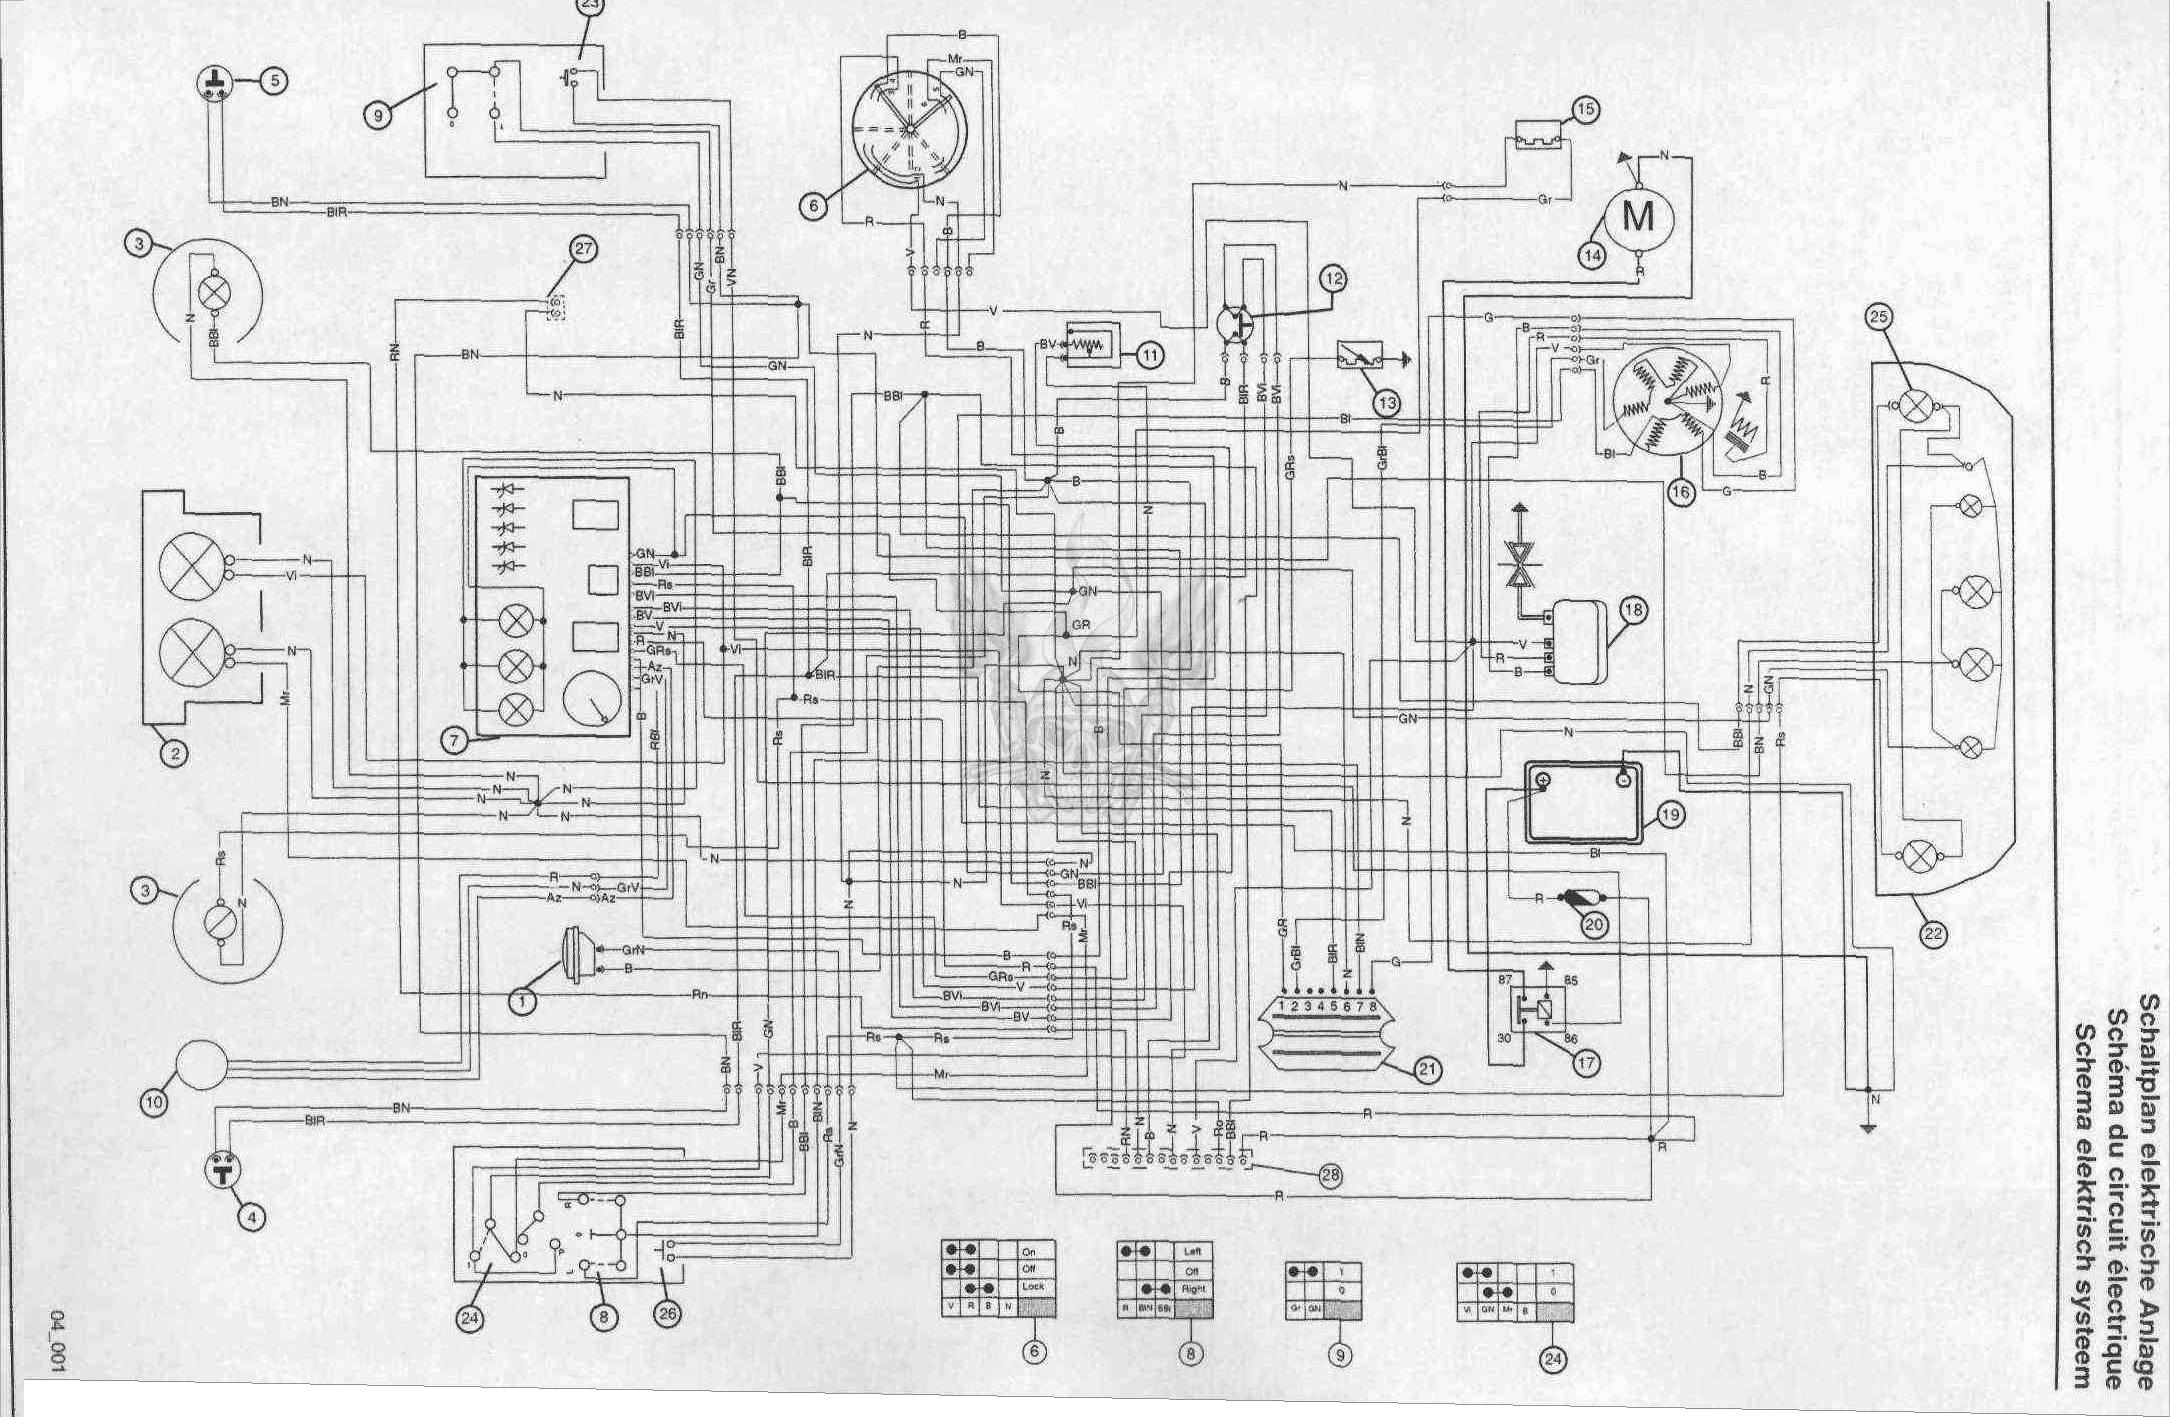 Dacia Logan Wiring Diagram Diagrams For Dummies Renault Images Gallery